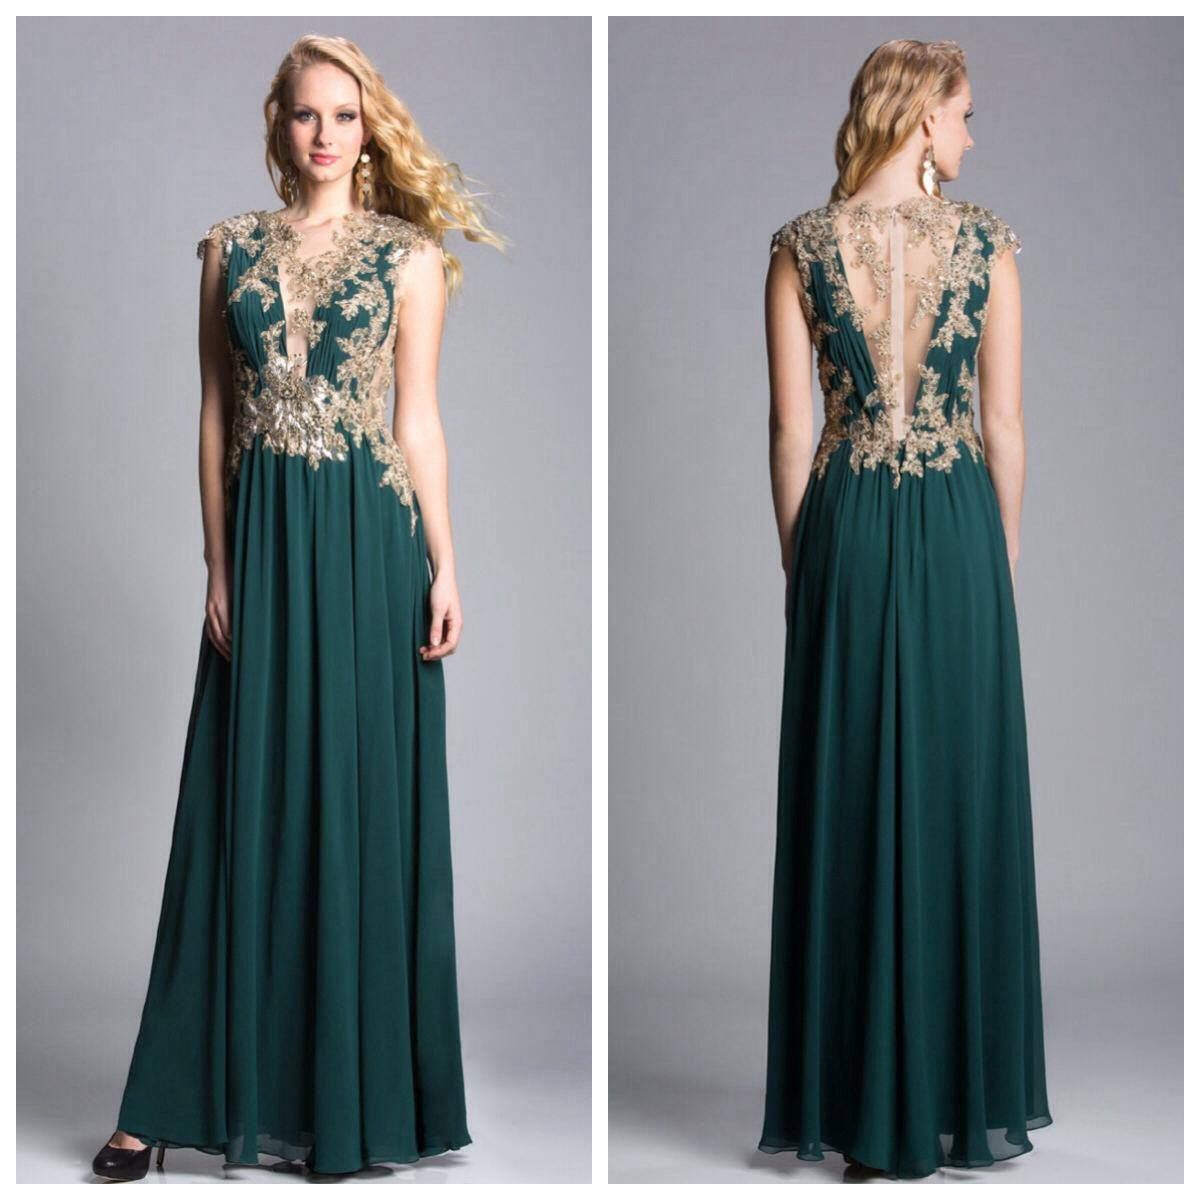 Feriani 18377 Champagne and Emerald Goddess Gown